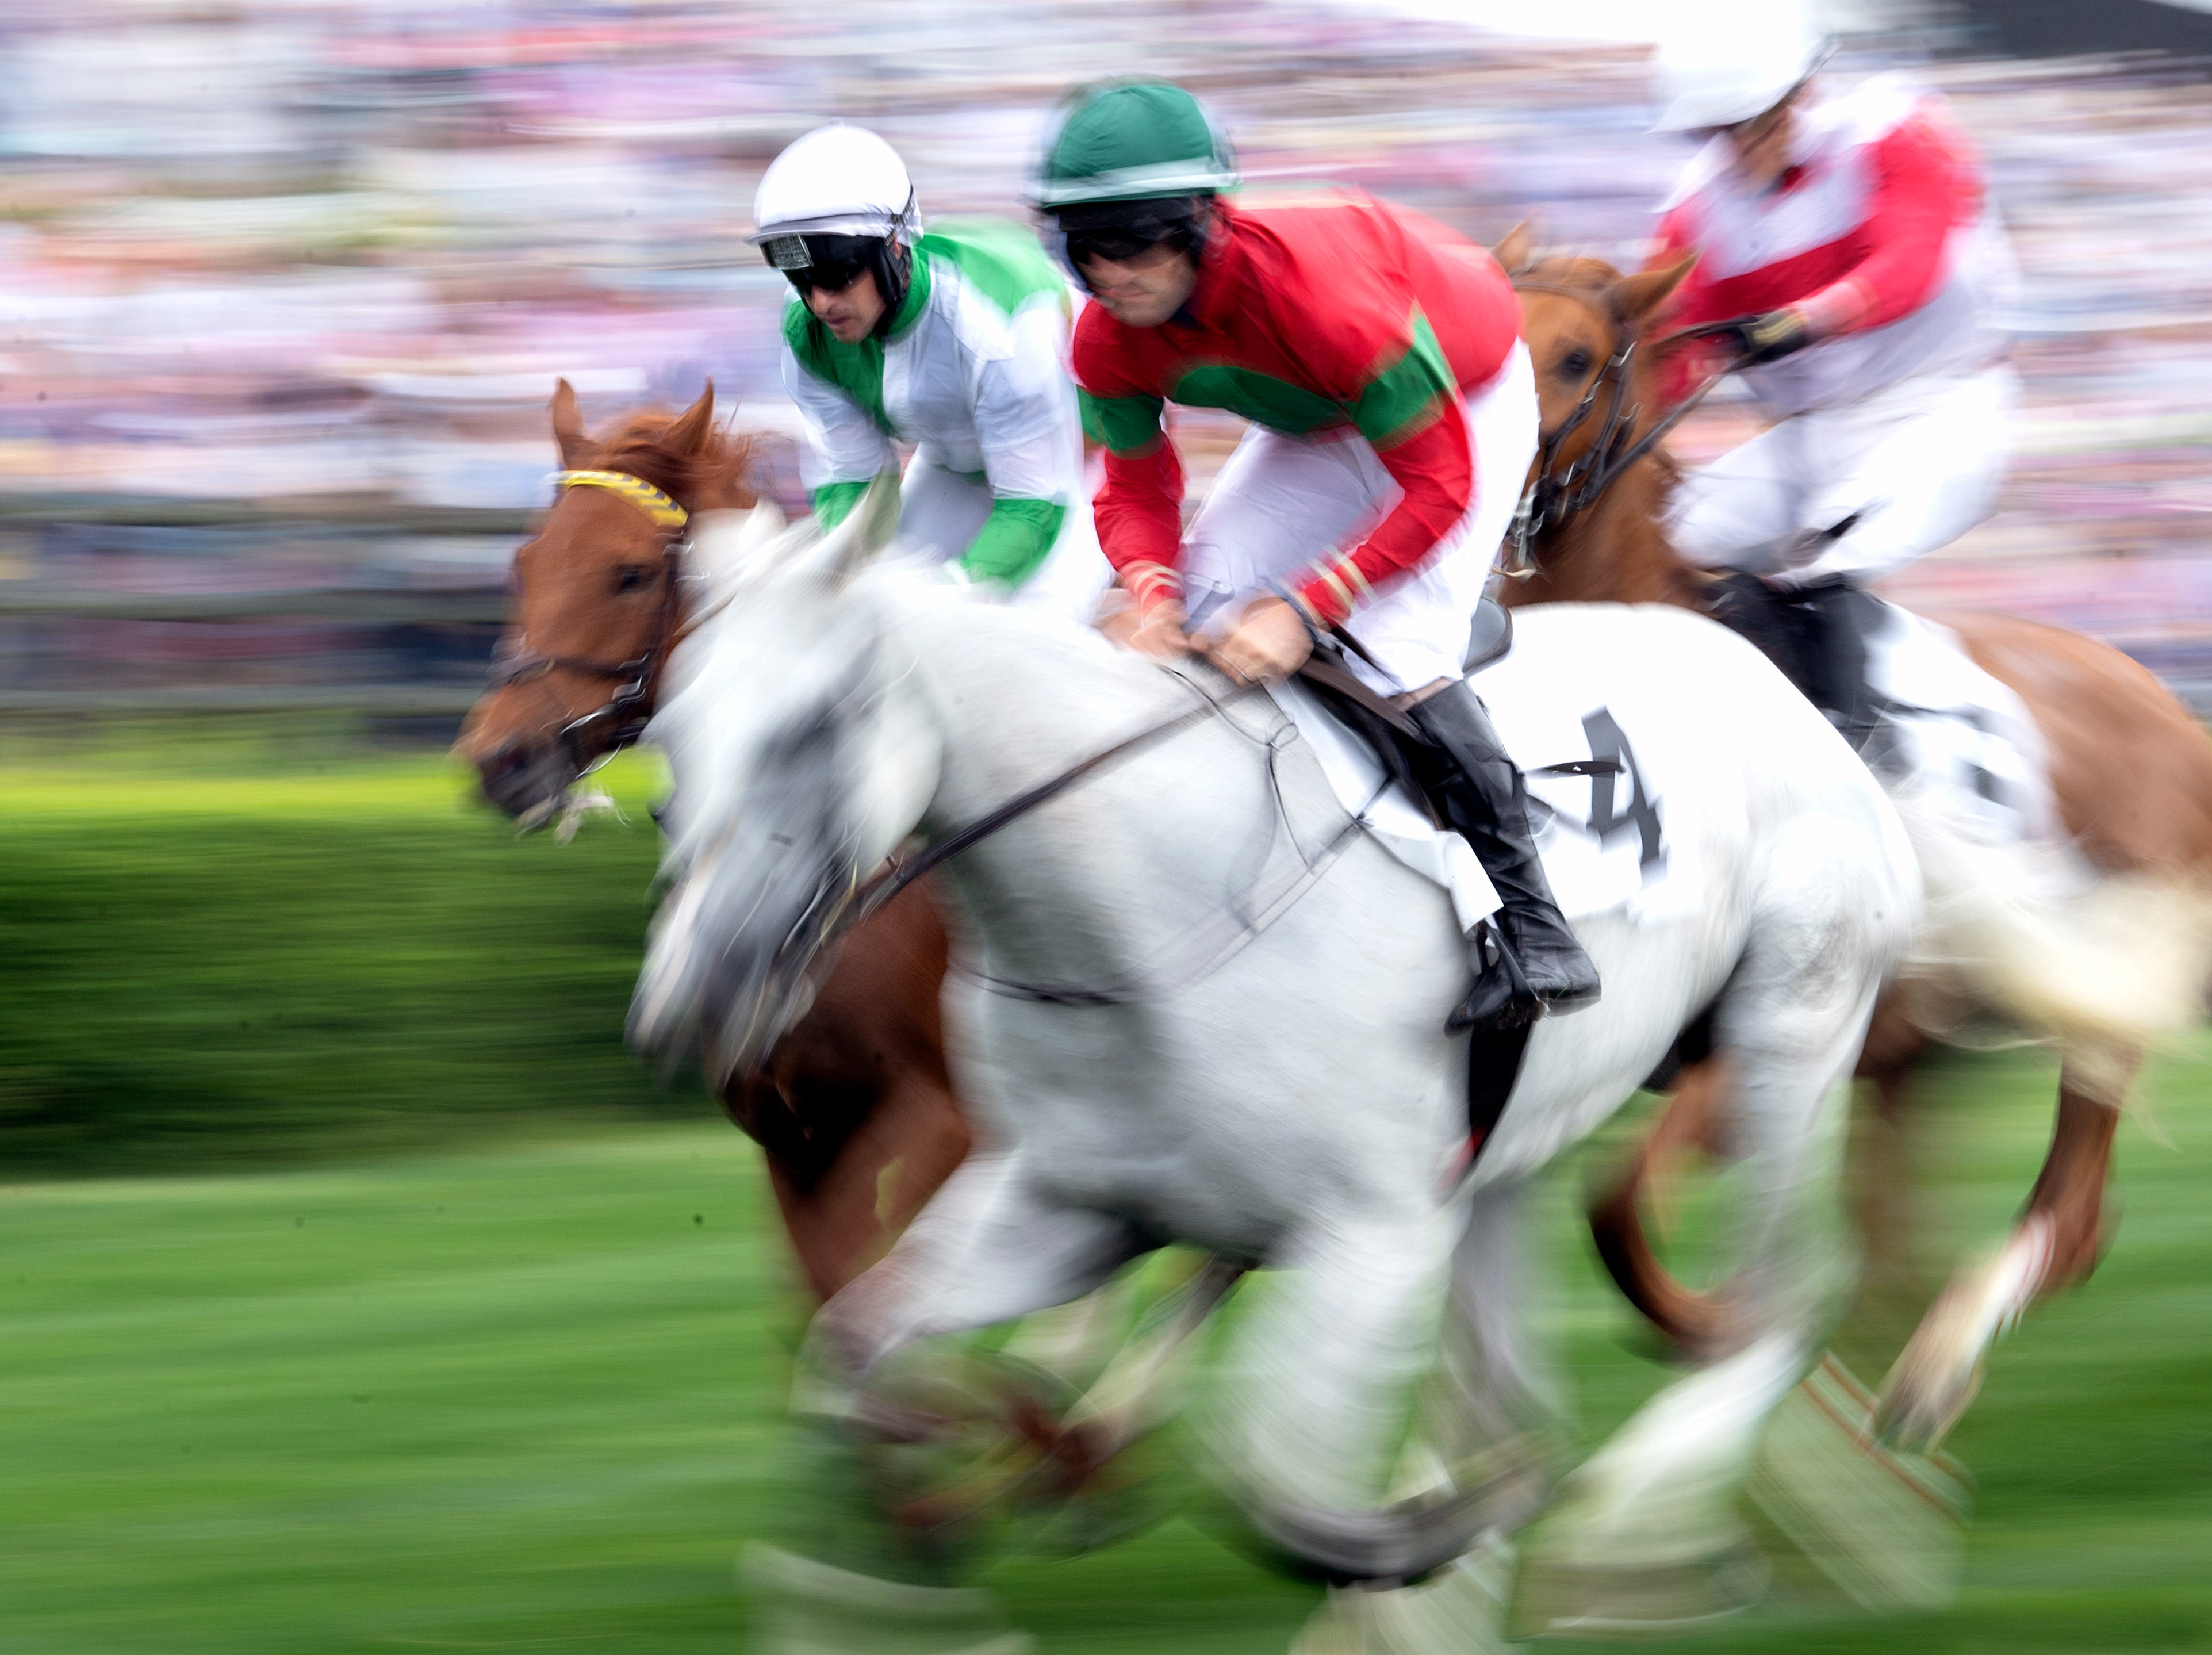 Horses race during the 78th Iroquois Steeplechase at Percy Warner Park in Nashville on Saturday, May 11, 2019.